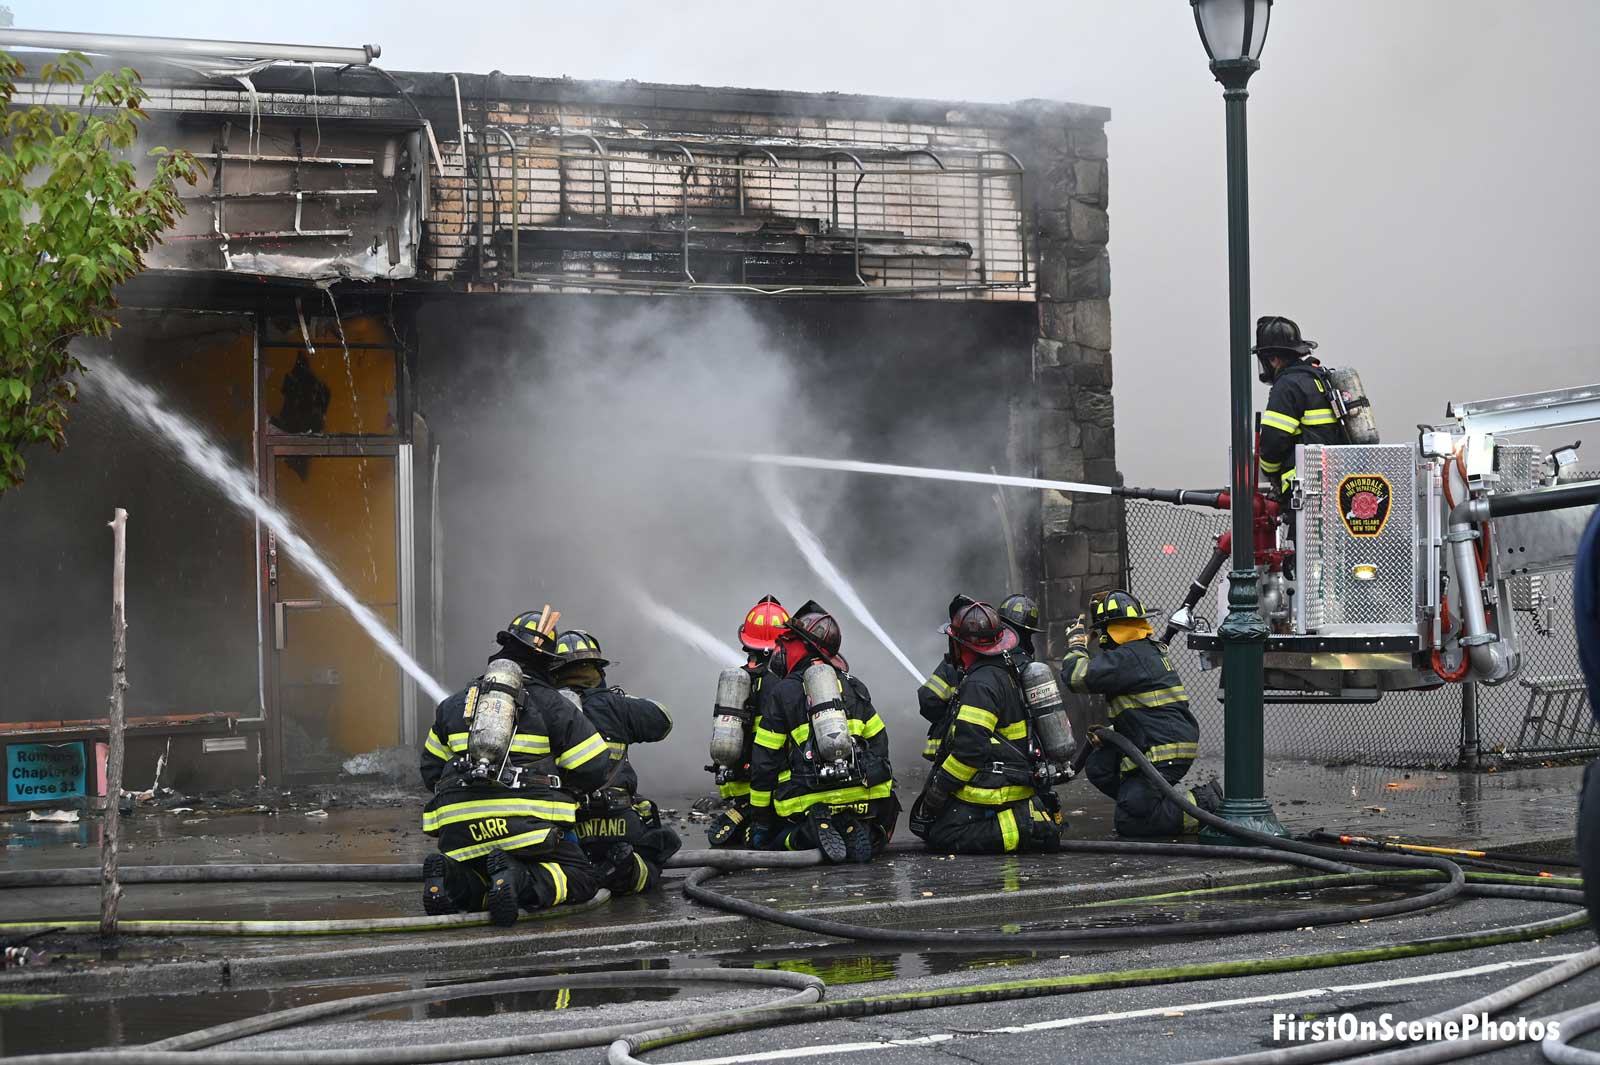 Firefighters use multiple handlines on exterior of businesses